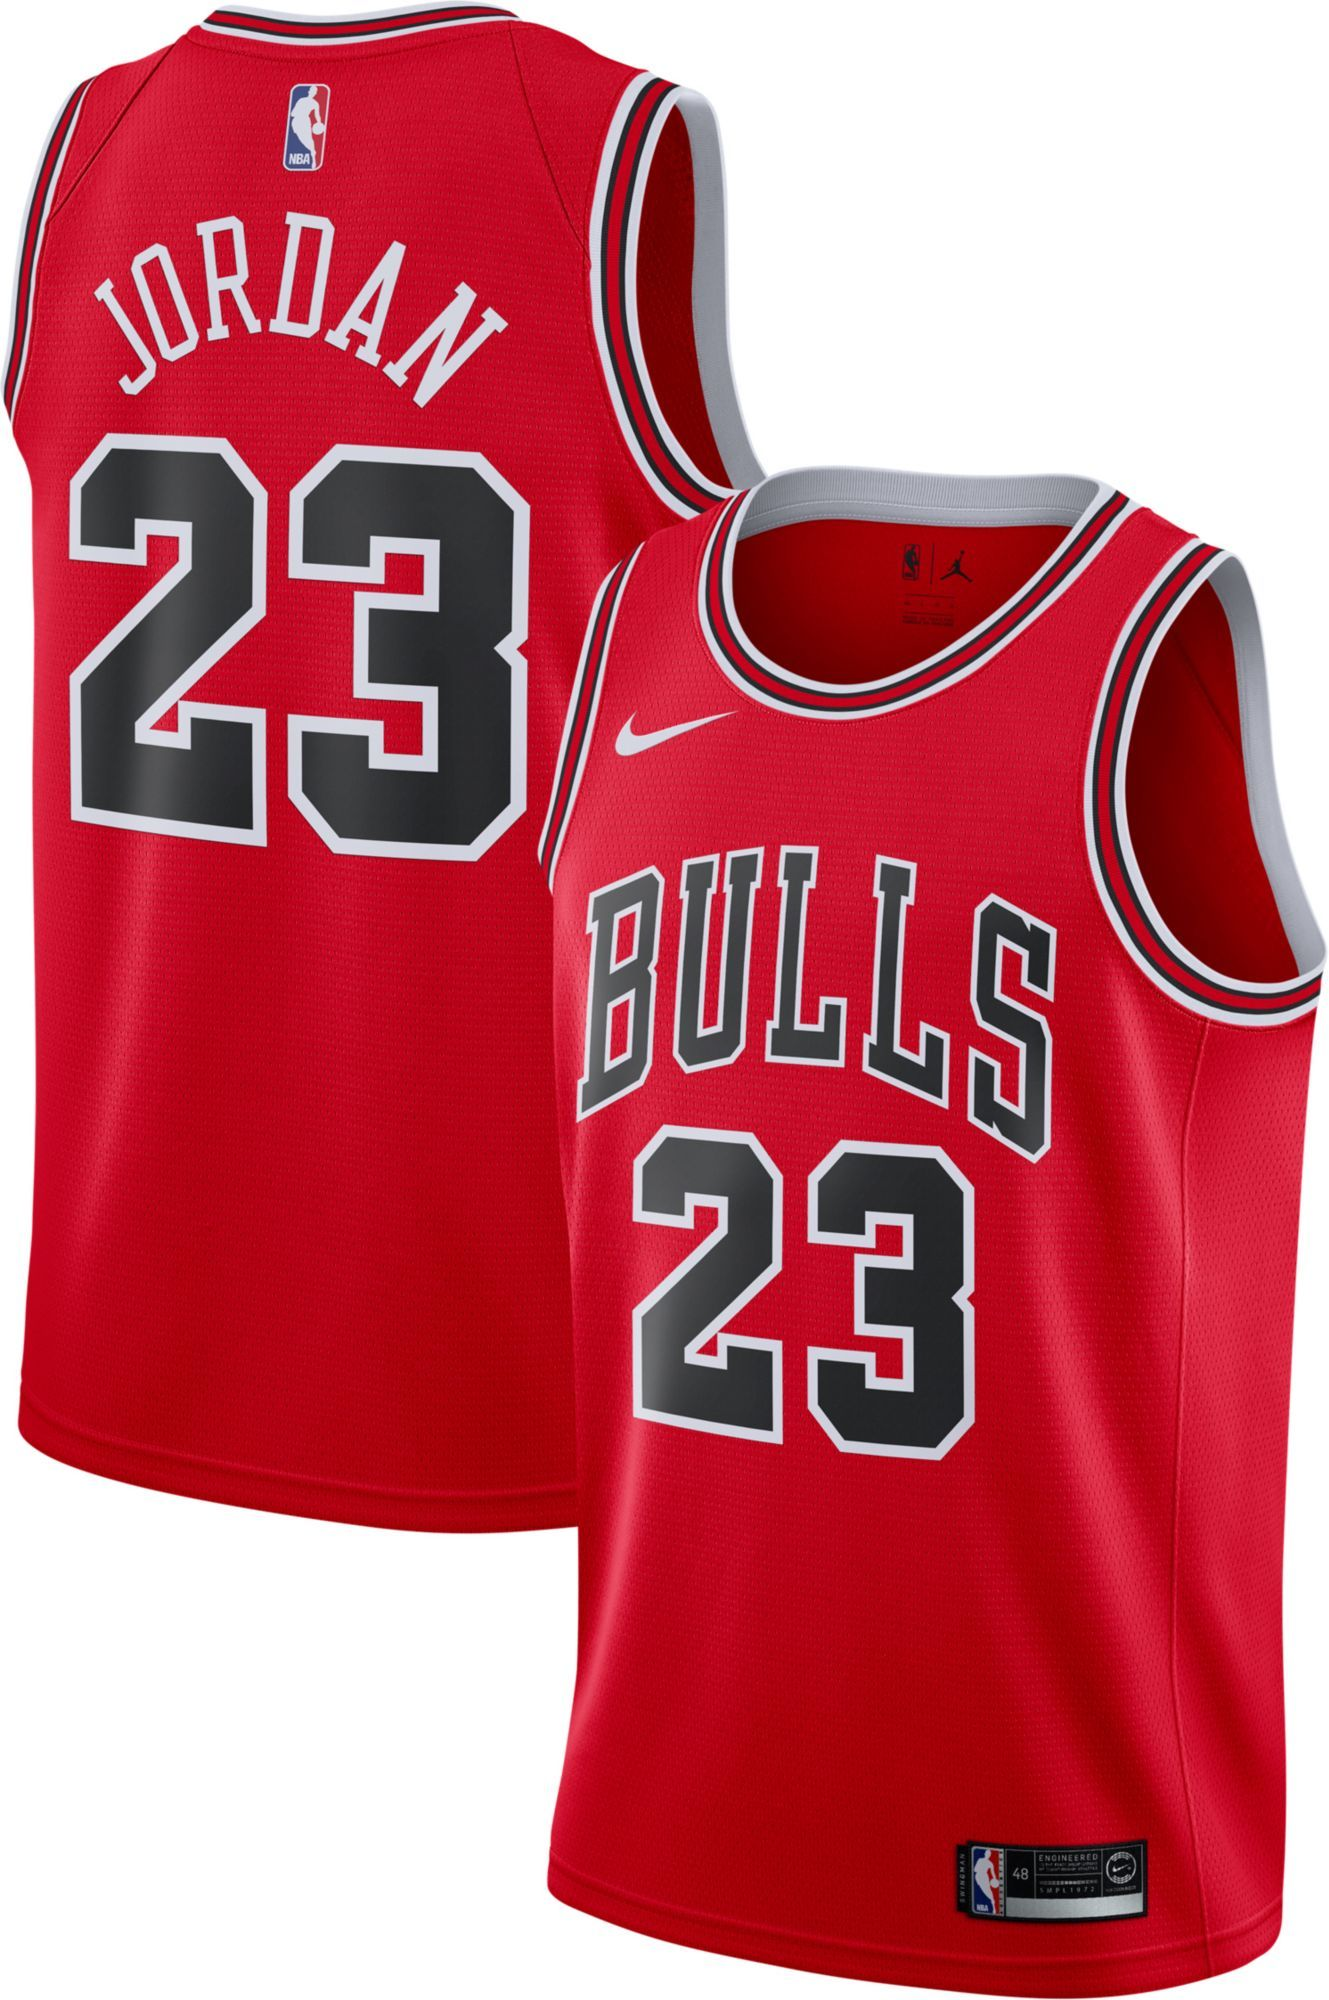 the best attitude 1f716 e1c13 Nike Men's Chicago Bulls Michael Jordan #23 Red Dri-FIT ...